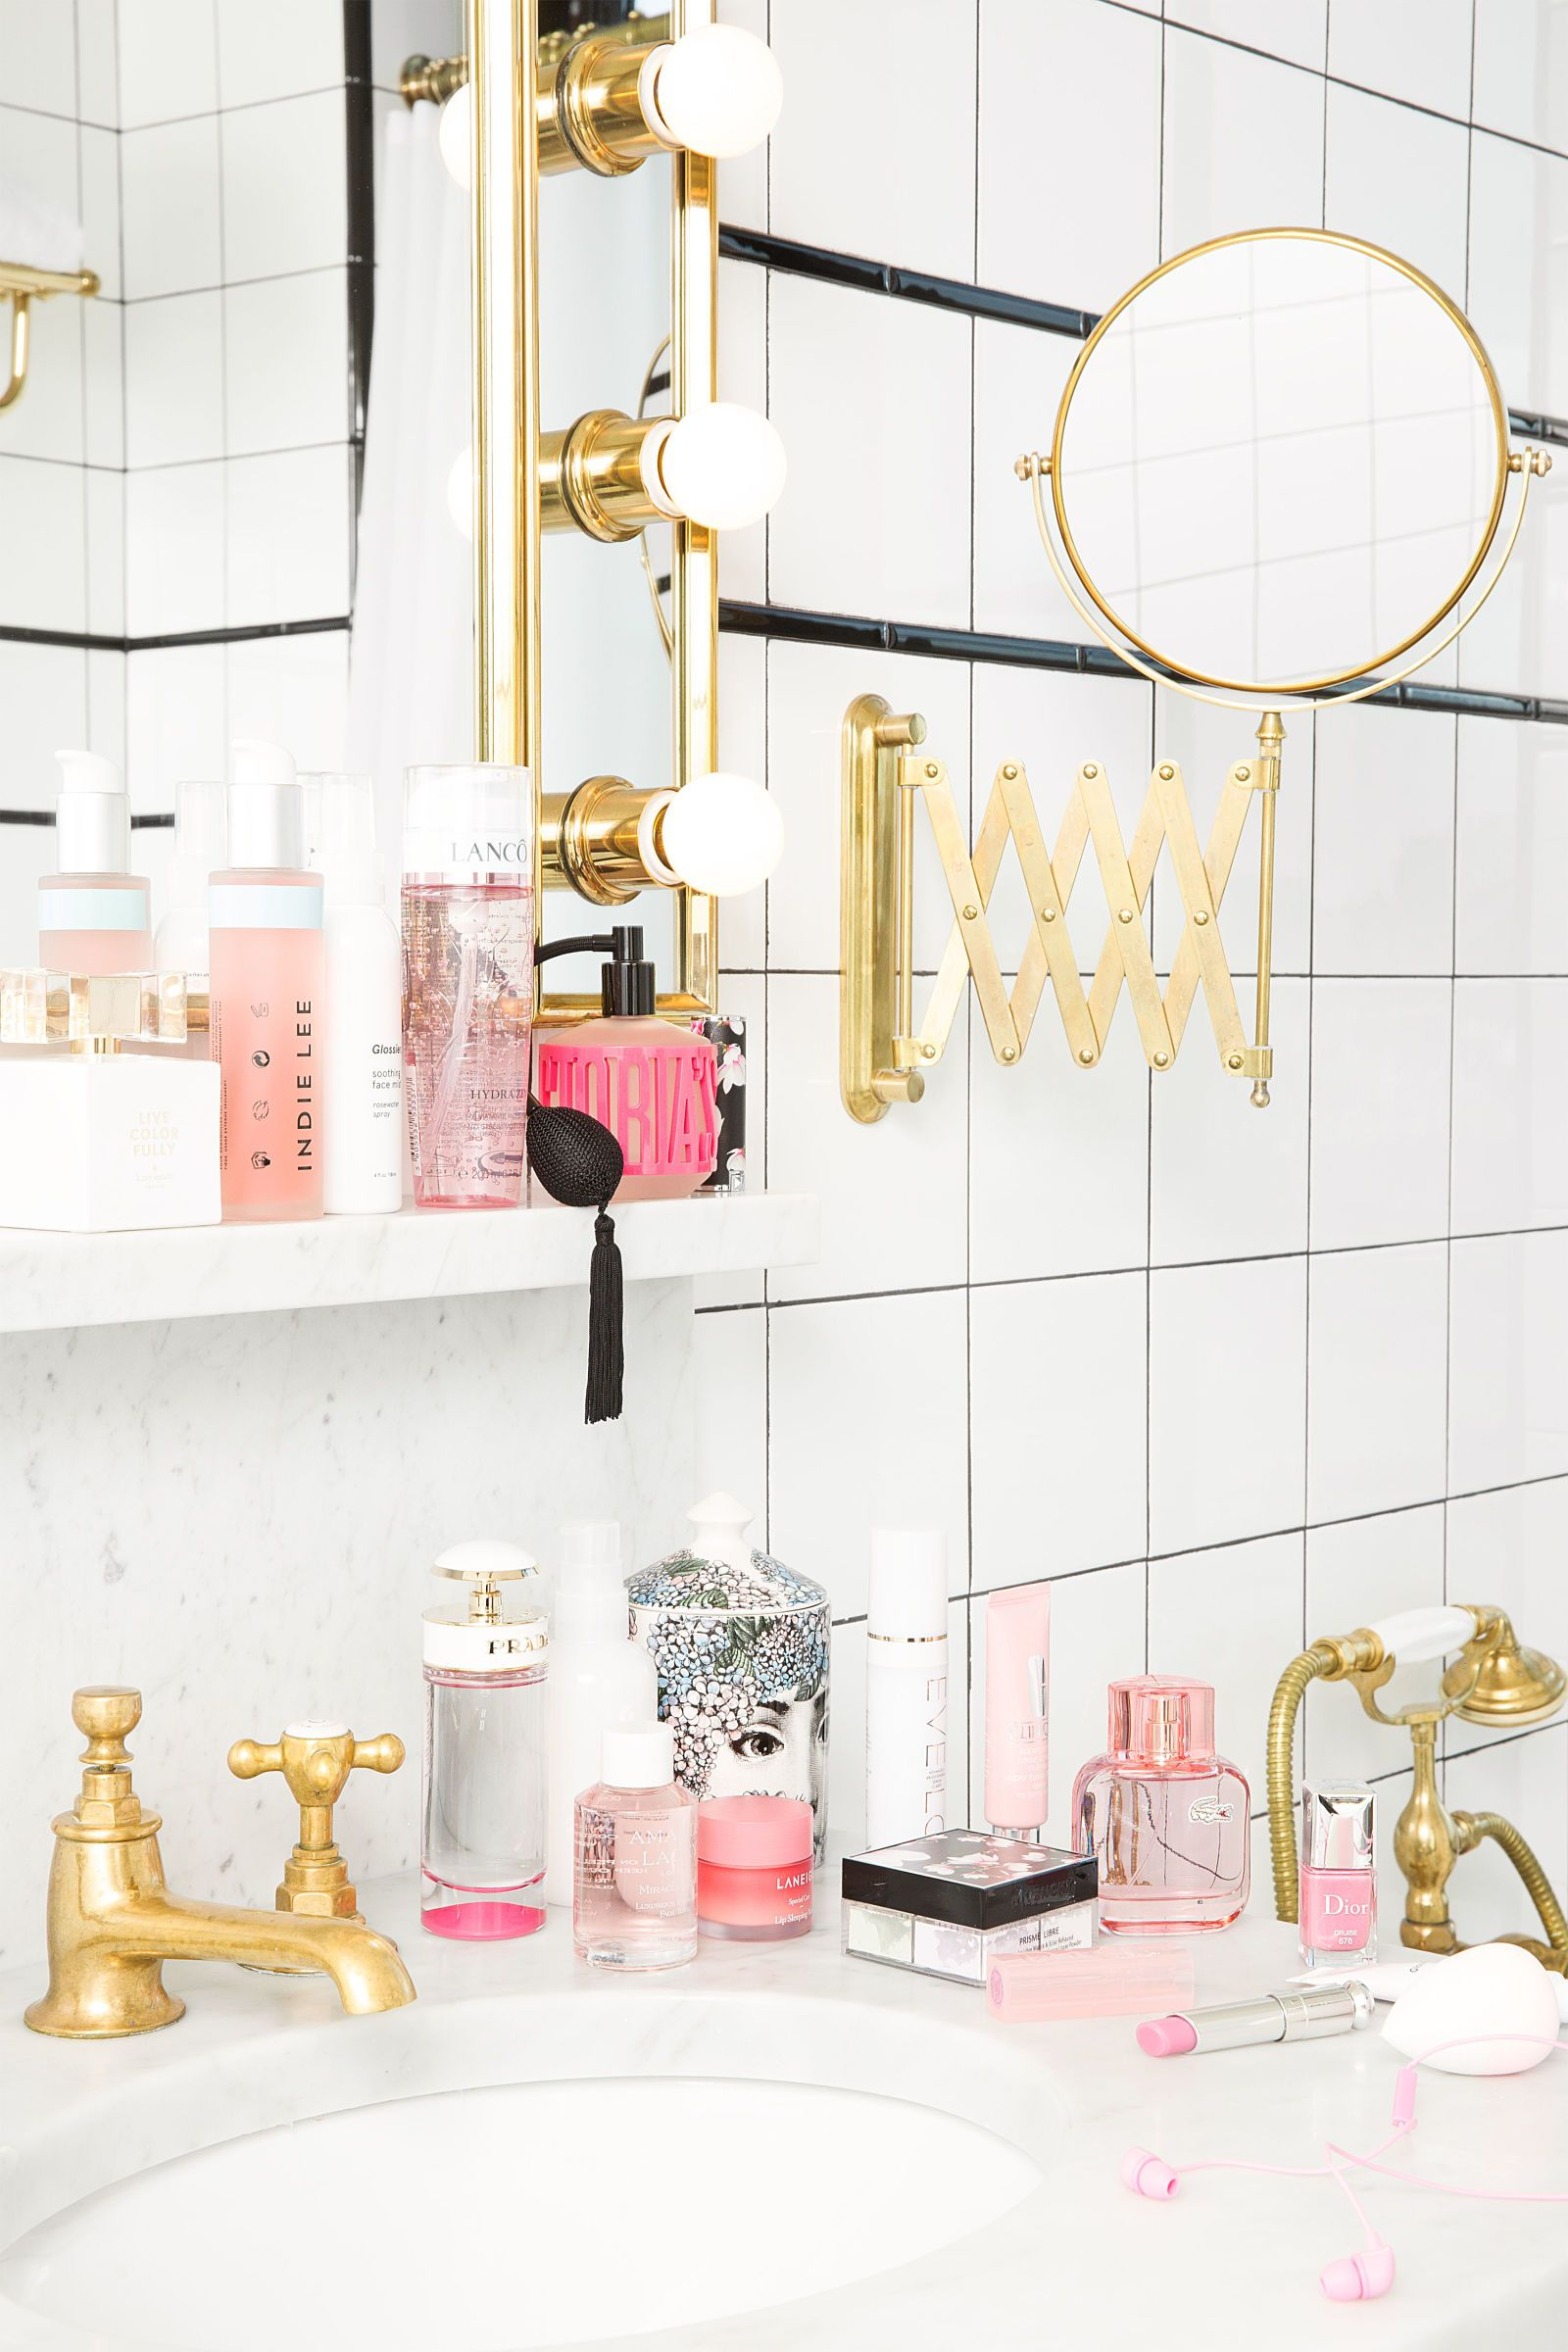 All Of The Beauty Products You Need To Make Your Bathroom Look Chic